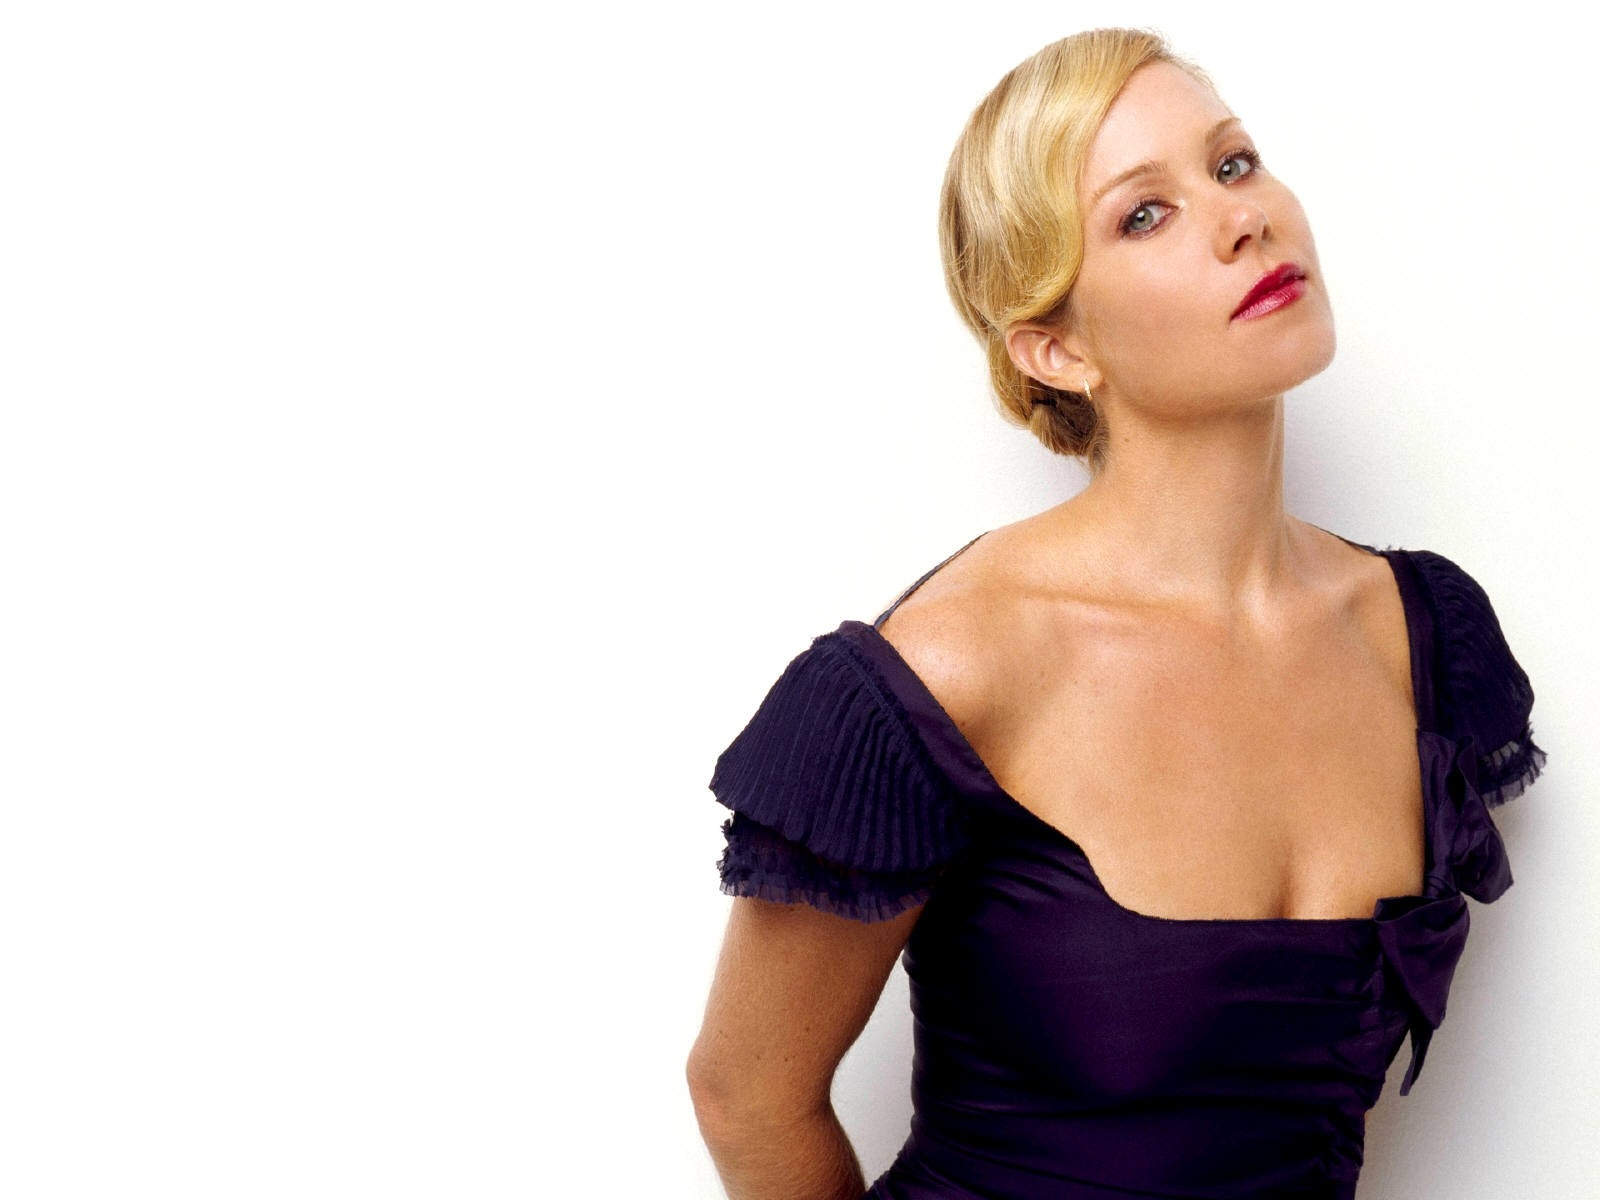 Wallpaper: una seducente immagine di Christina Applegate